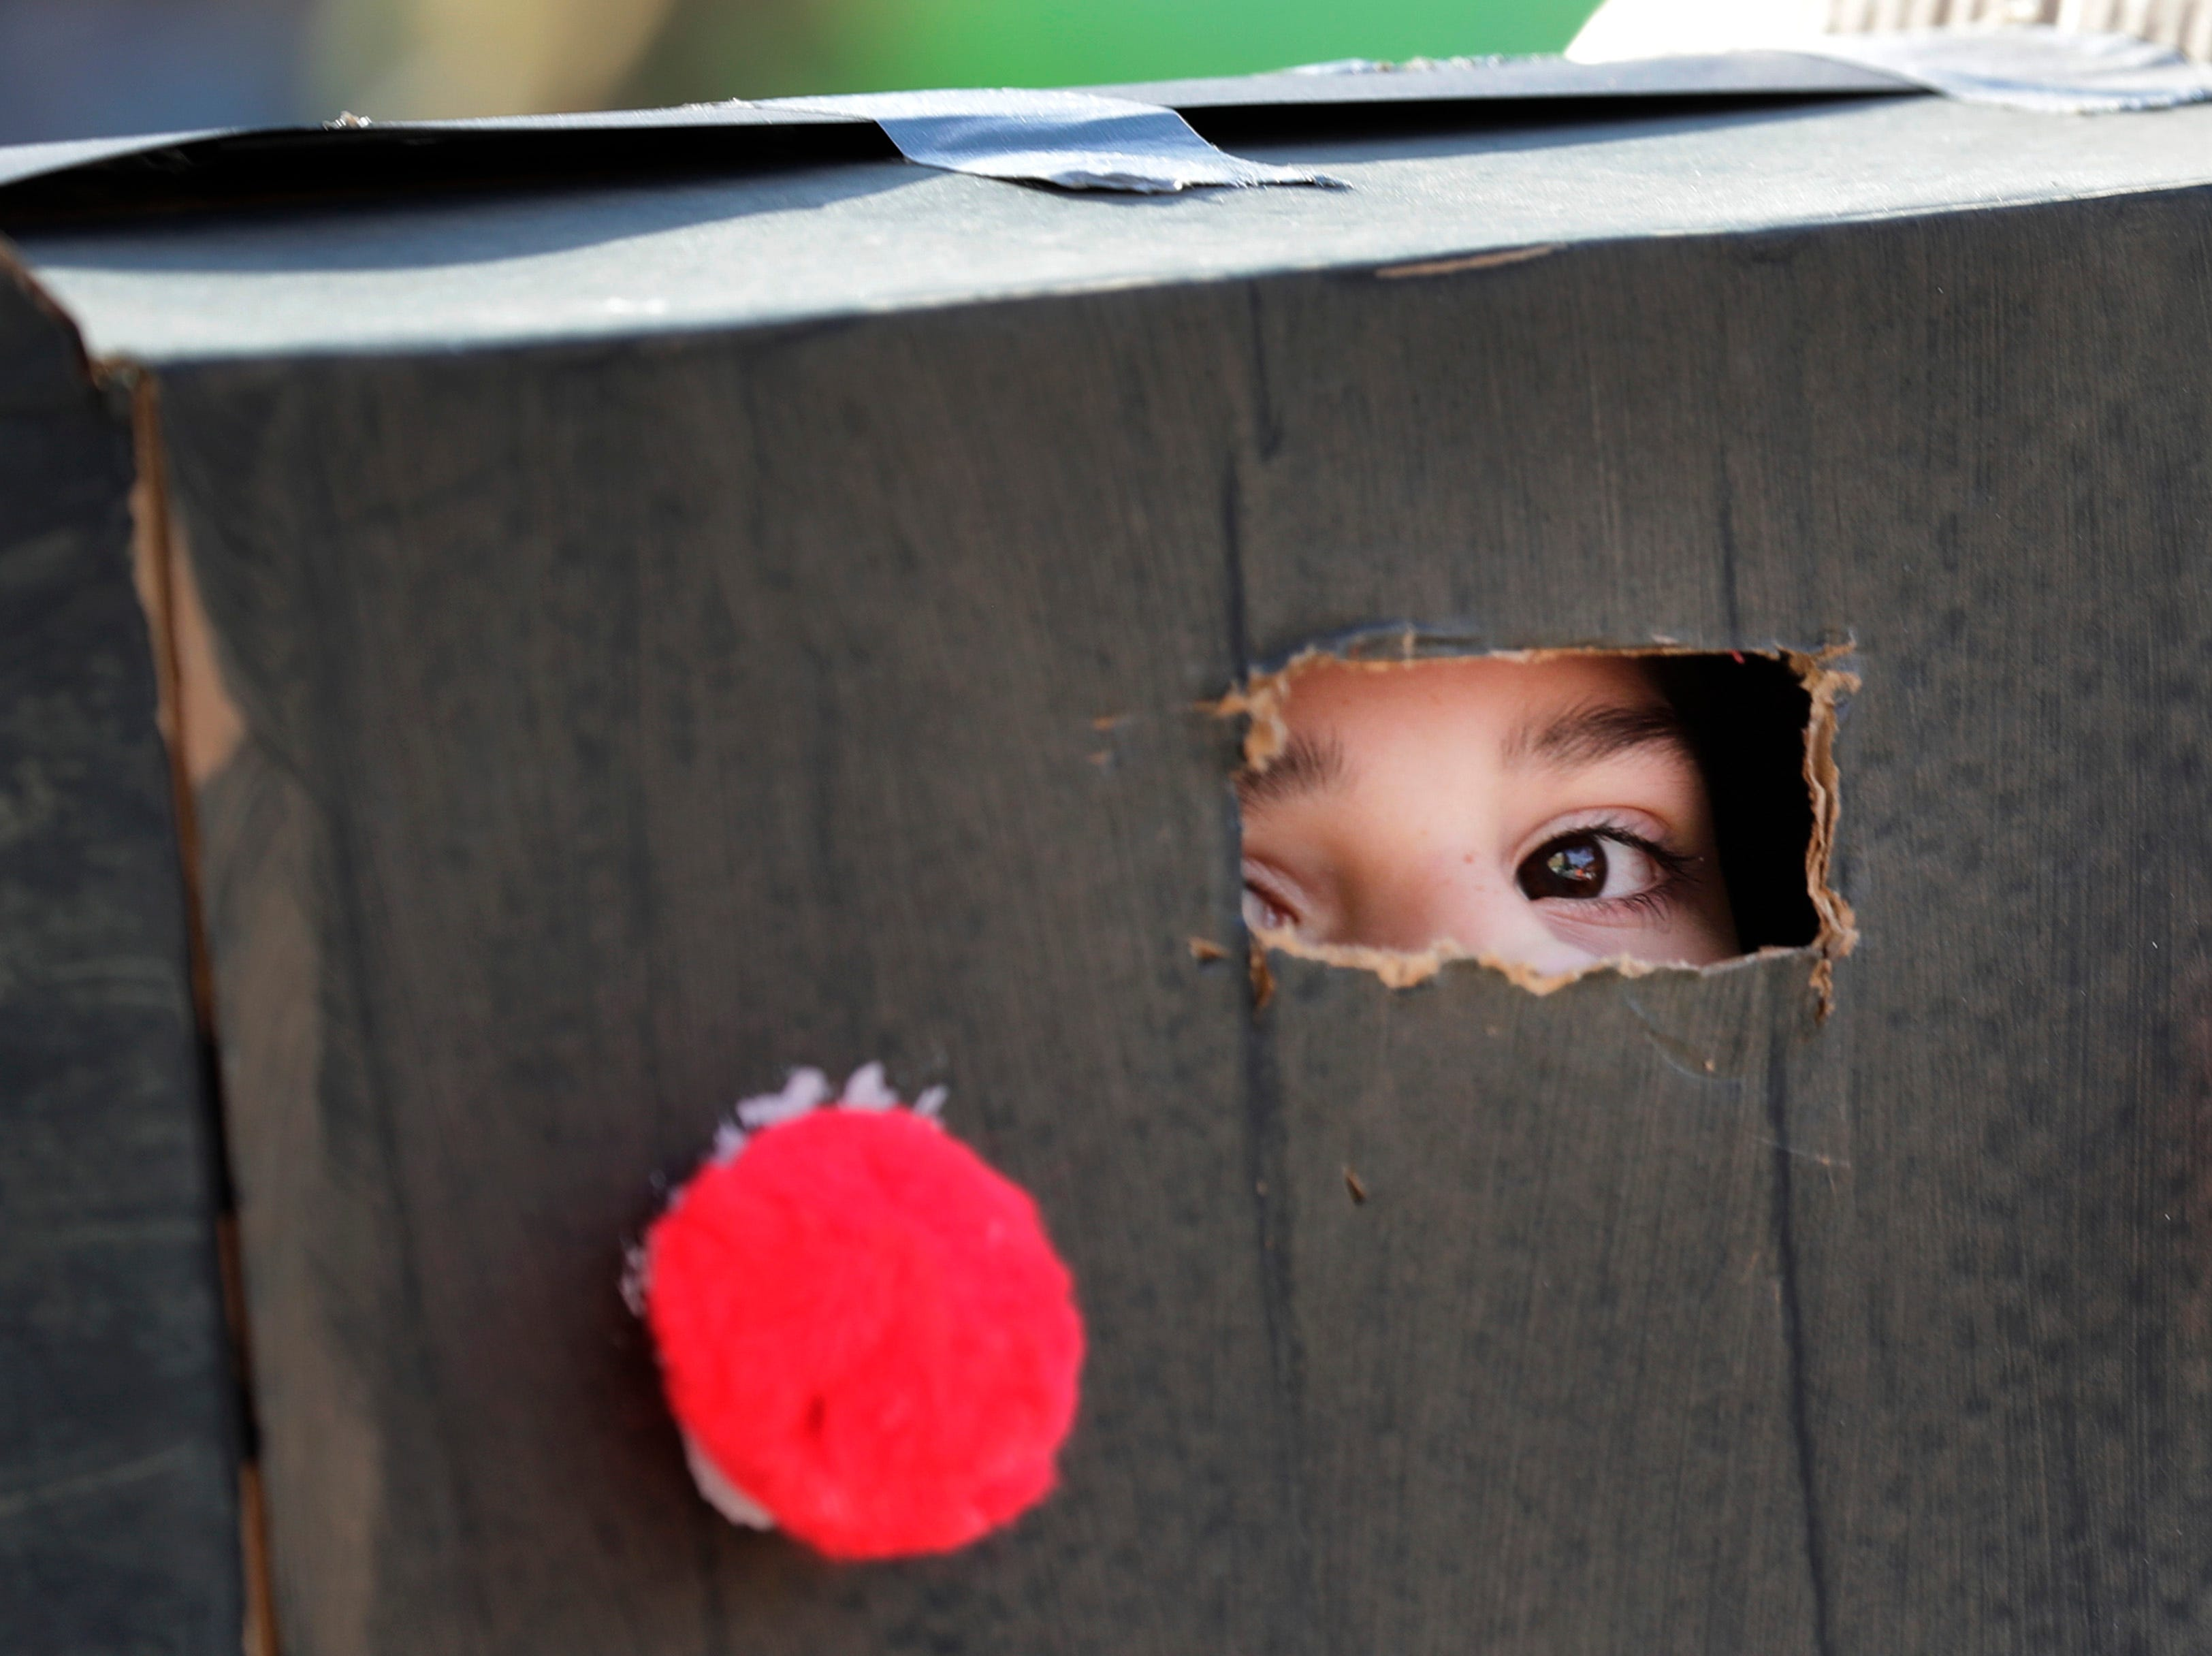 Claire Griffin, 9, peeks out of her homemade Godzilla costume during the 10th annual ChildrenÕs Parade Wednesday, July 25, 2018, in Appleton, Wis. Danny Damiani/USA TODAY NETWORK-Wisconsin